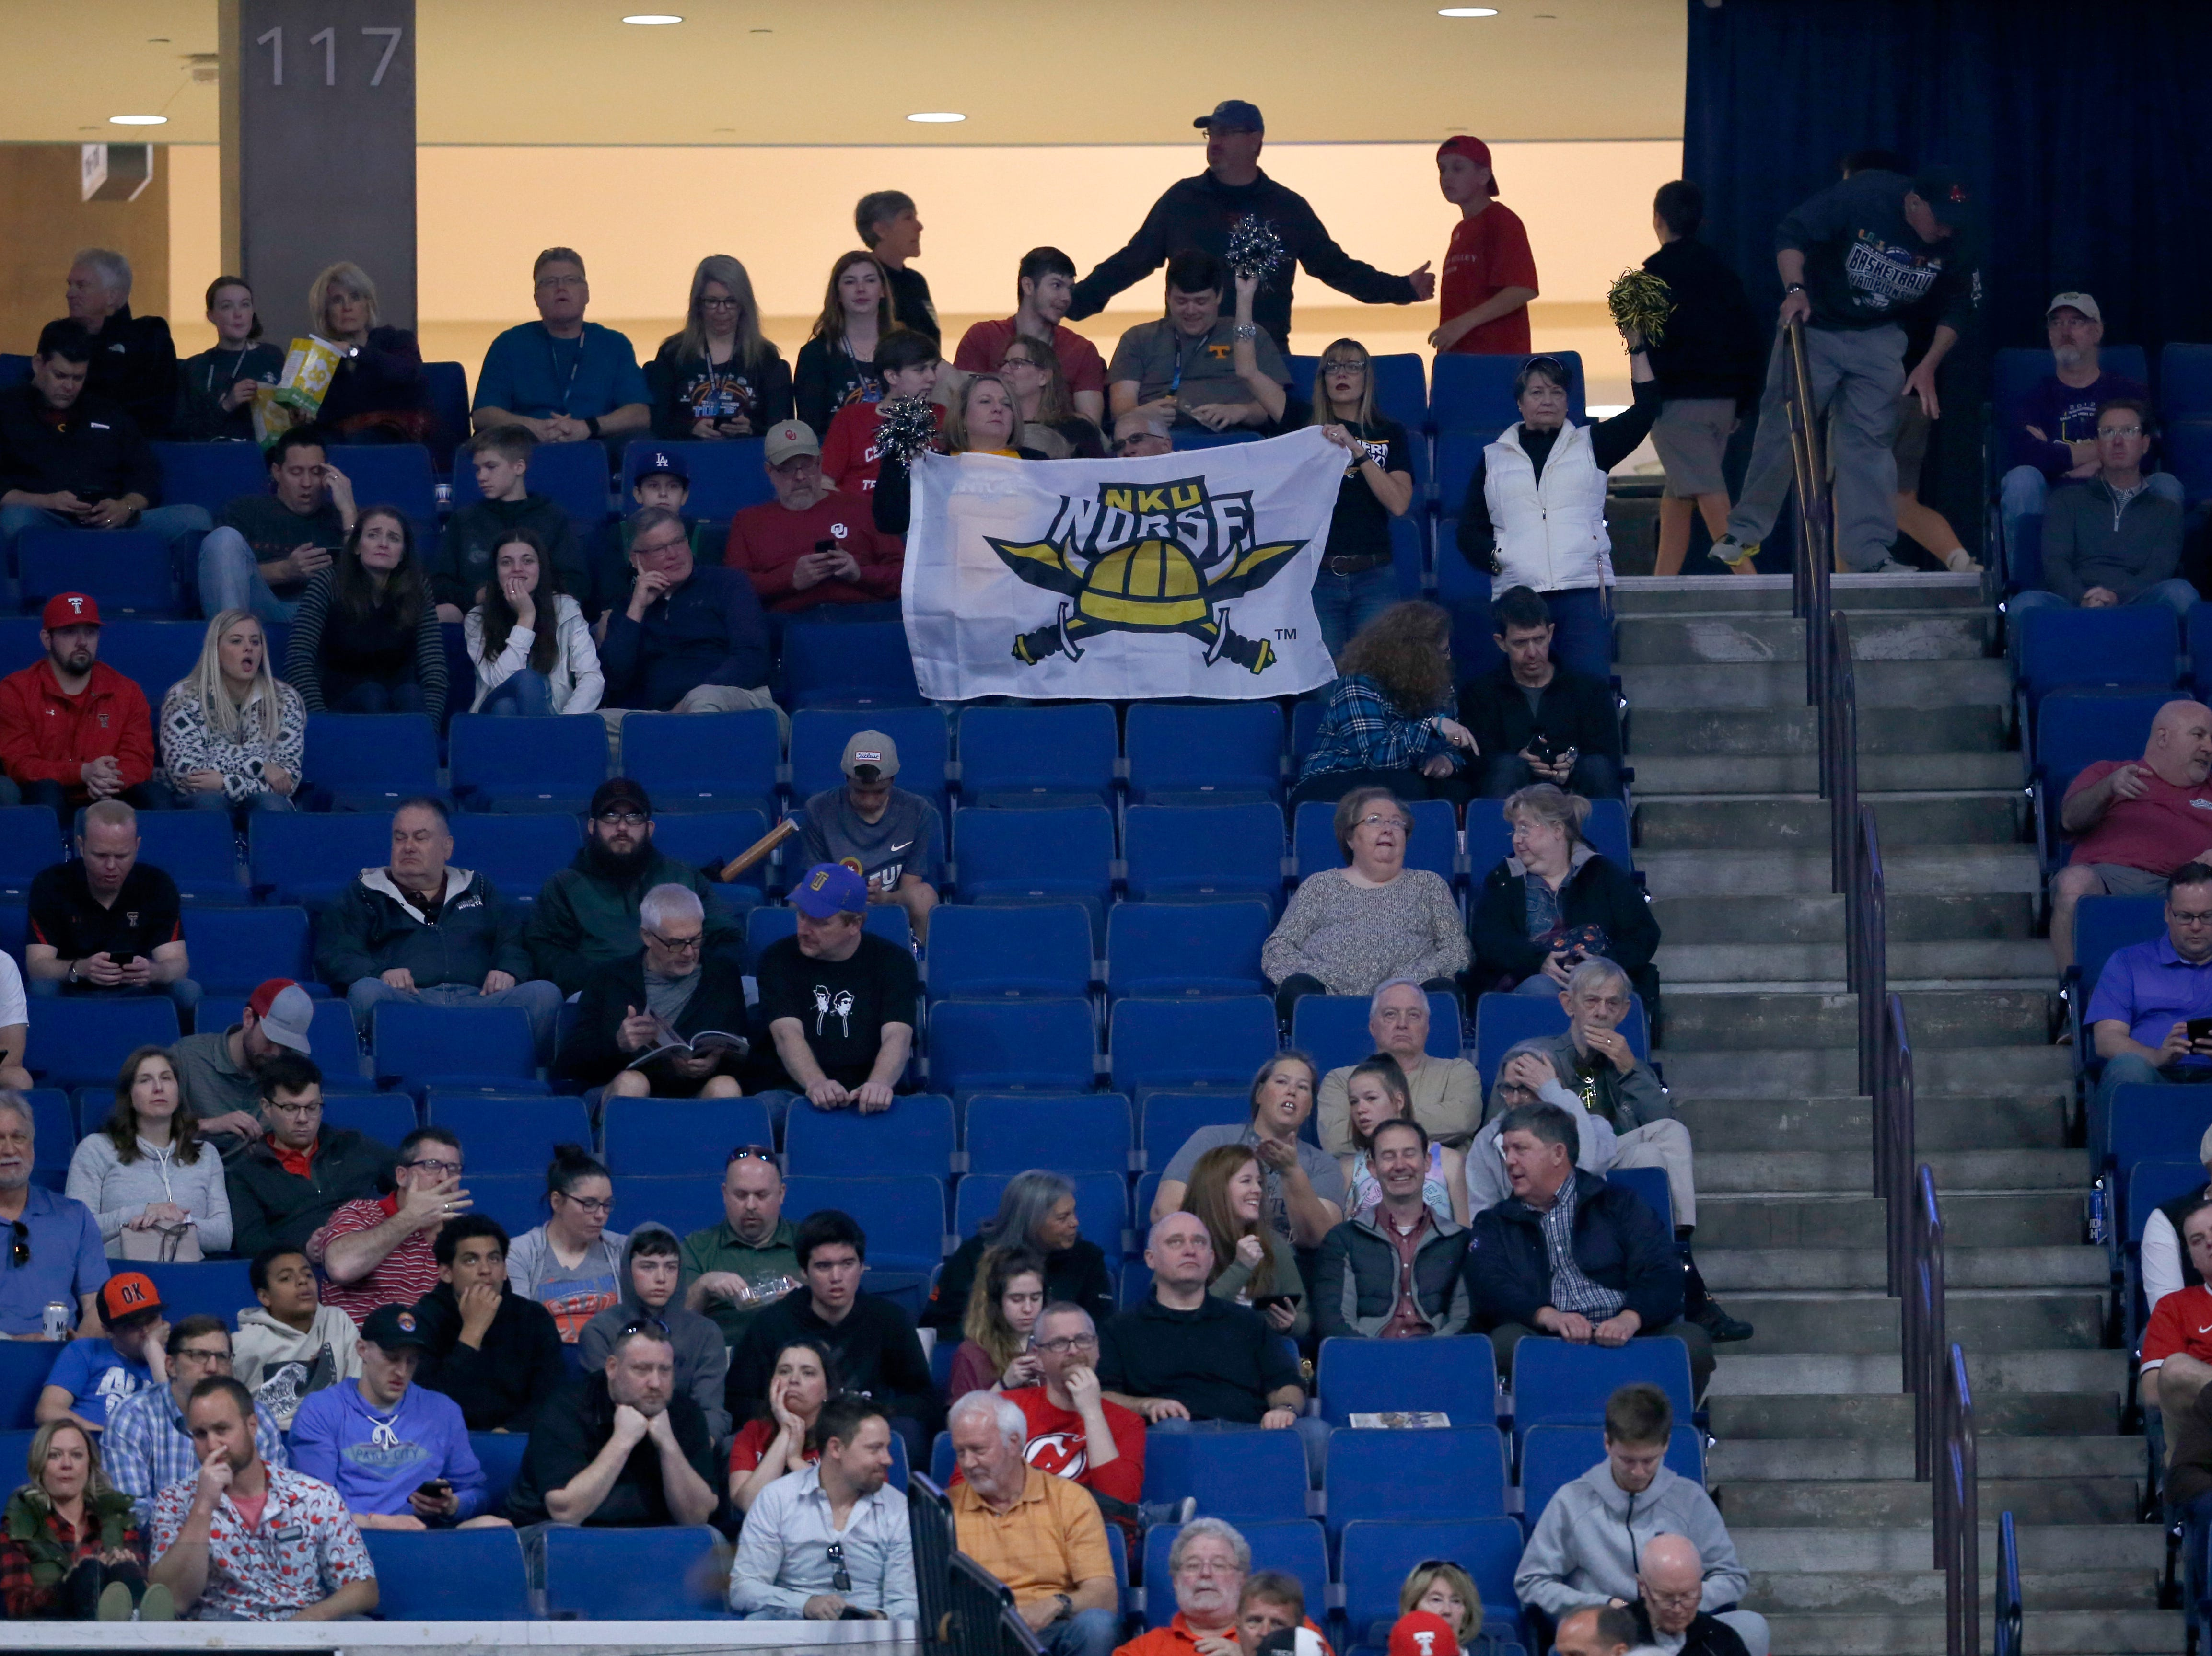 Northern Kentucky Norse fans cheer during a timeout in the first half of the NCAA Tournament First Round game between the 14-seeded Northern Kentucky Norse and the 3-seeded Texas Tech Red Raiders the BOK Center in downtown Tulsa on Friday, March 22, 2019. Texas Tech led 30-26 at halftime.